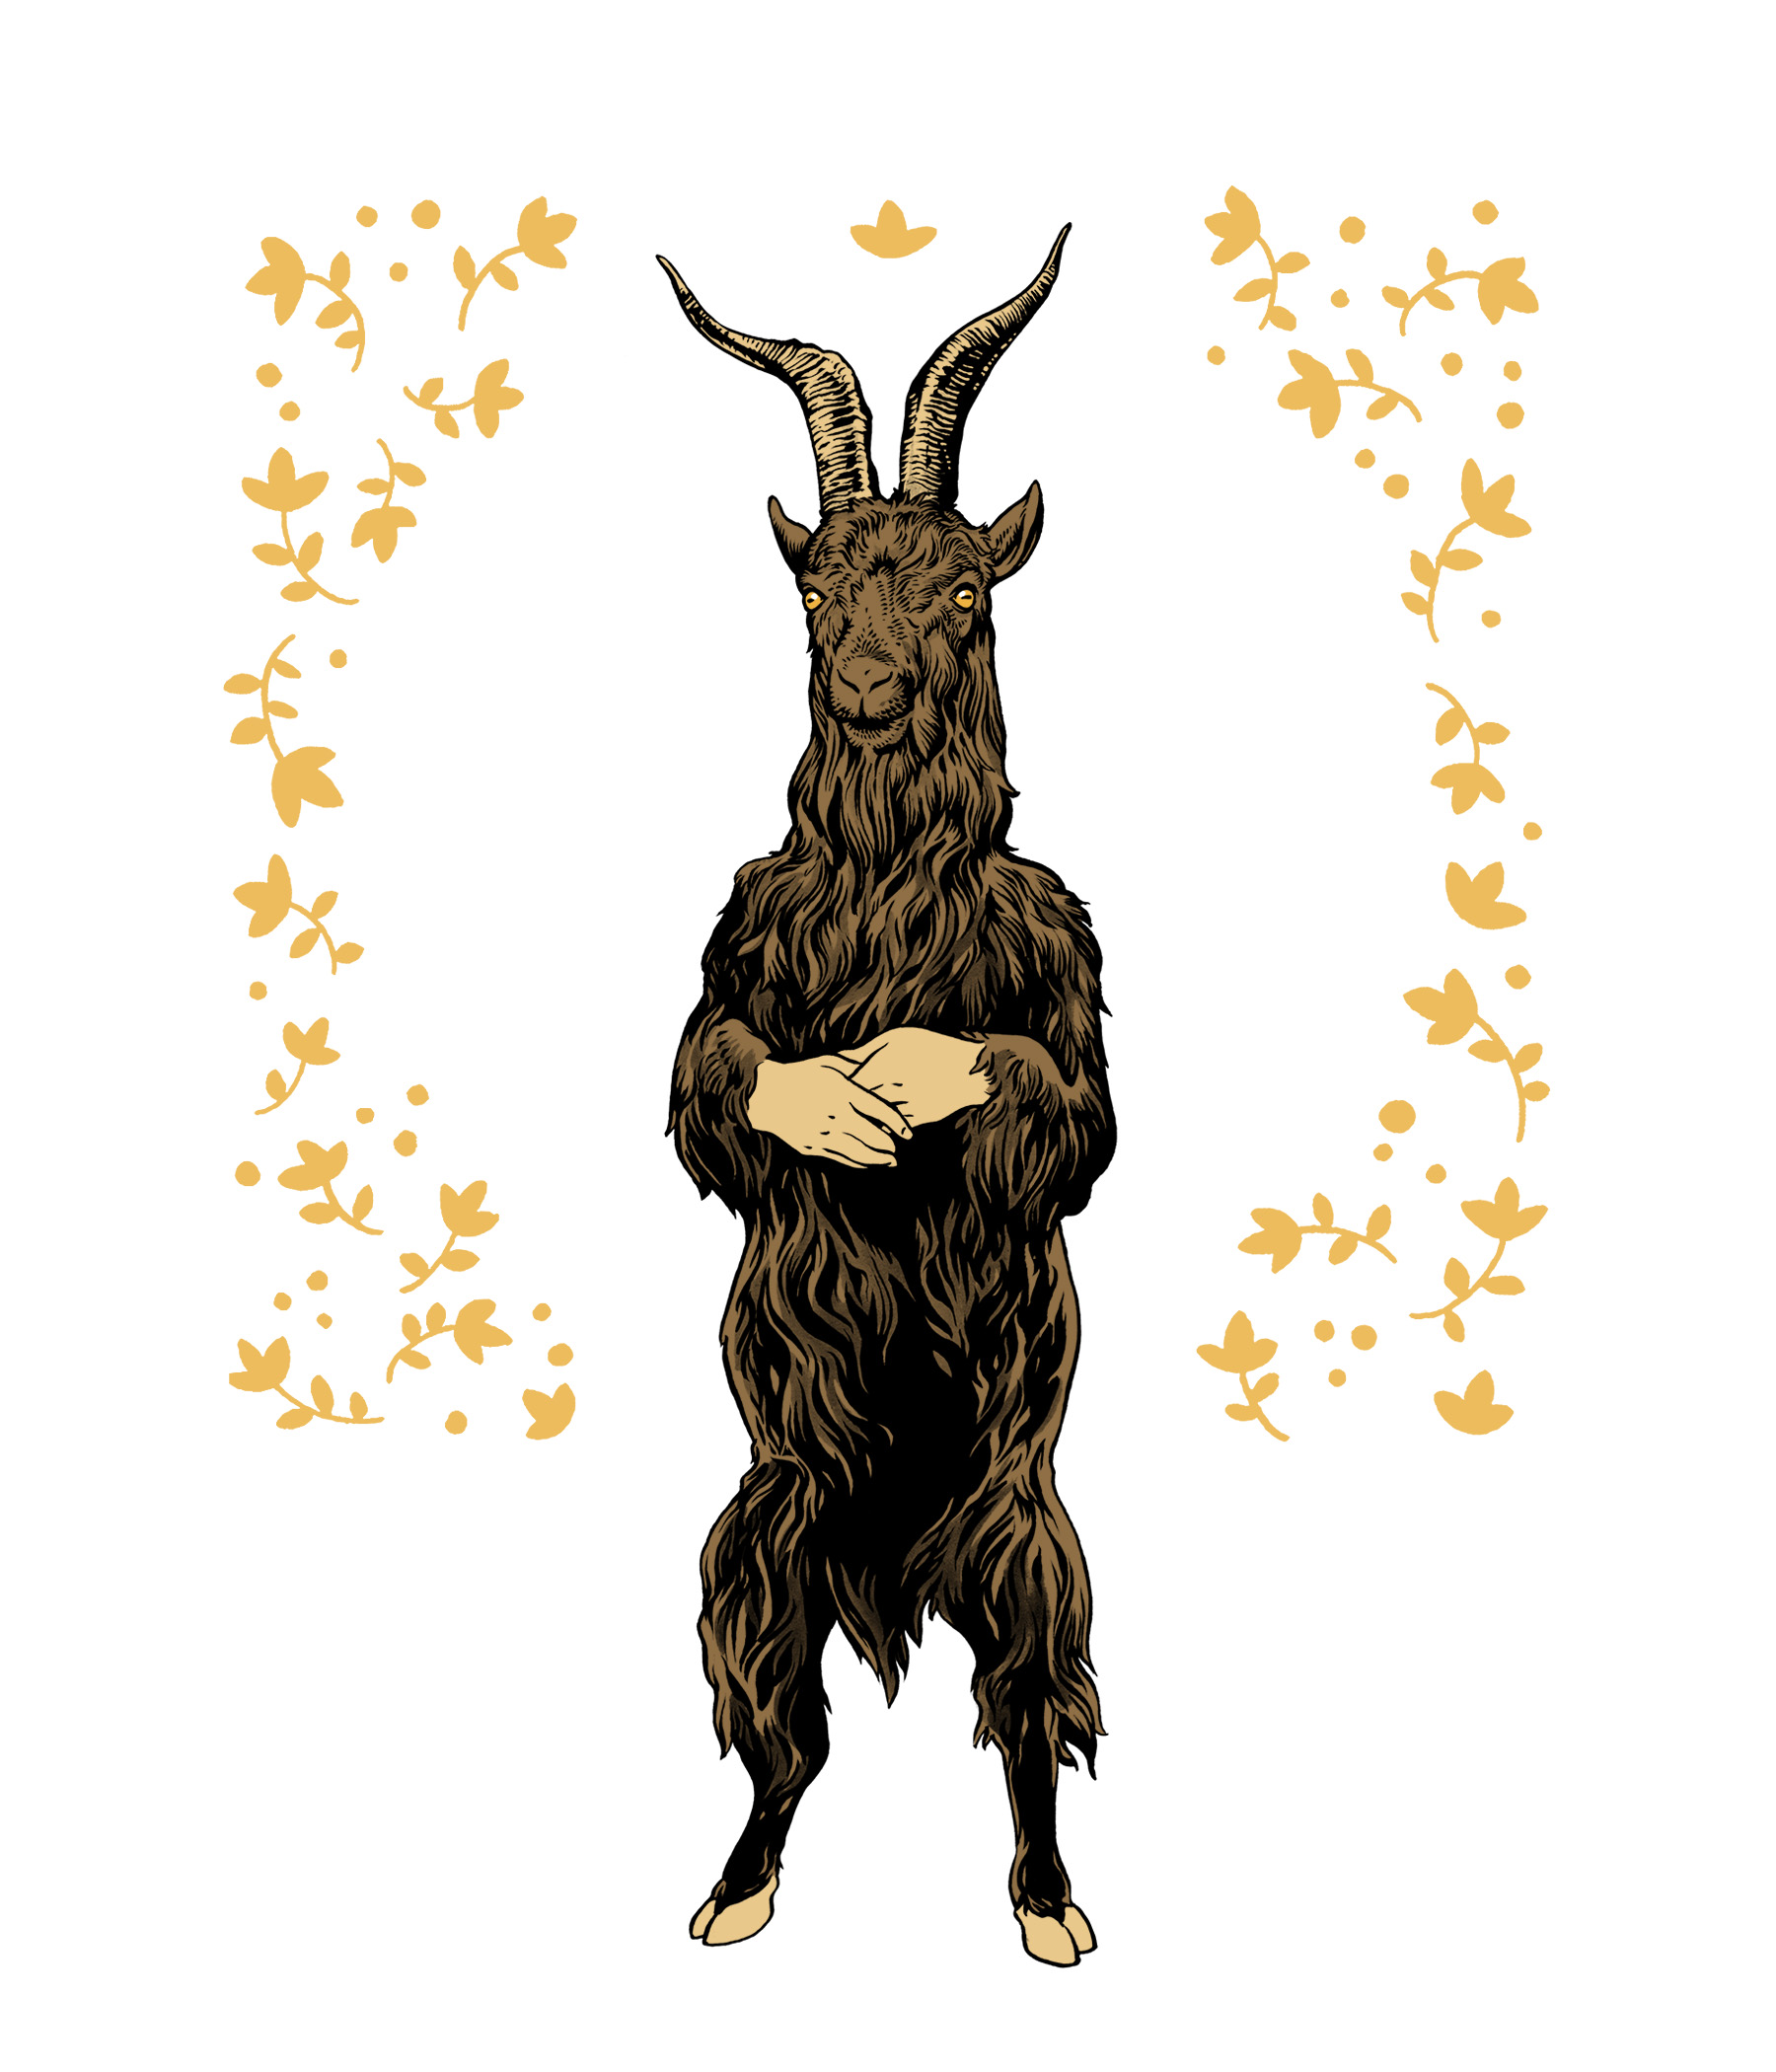 Goatman_No-text.jpg